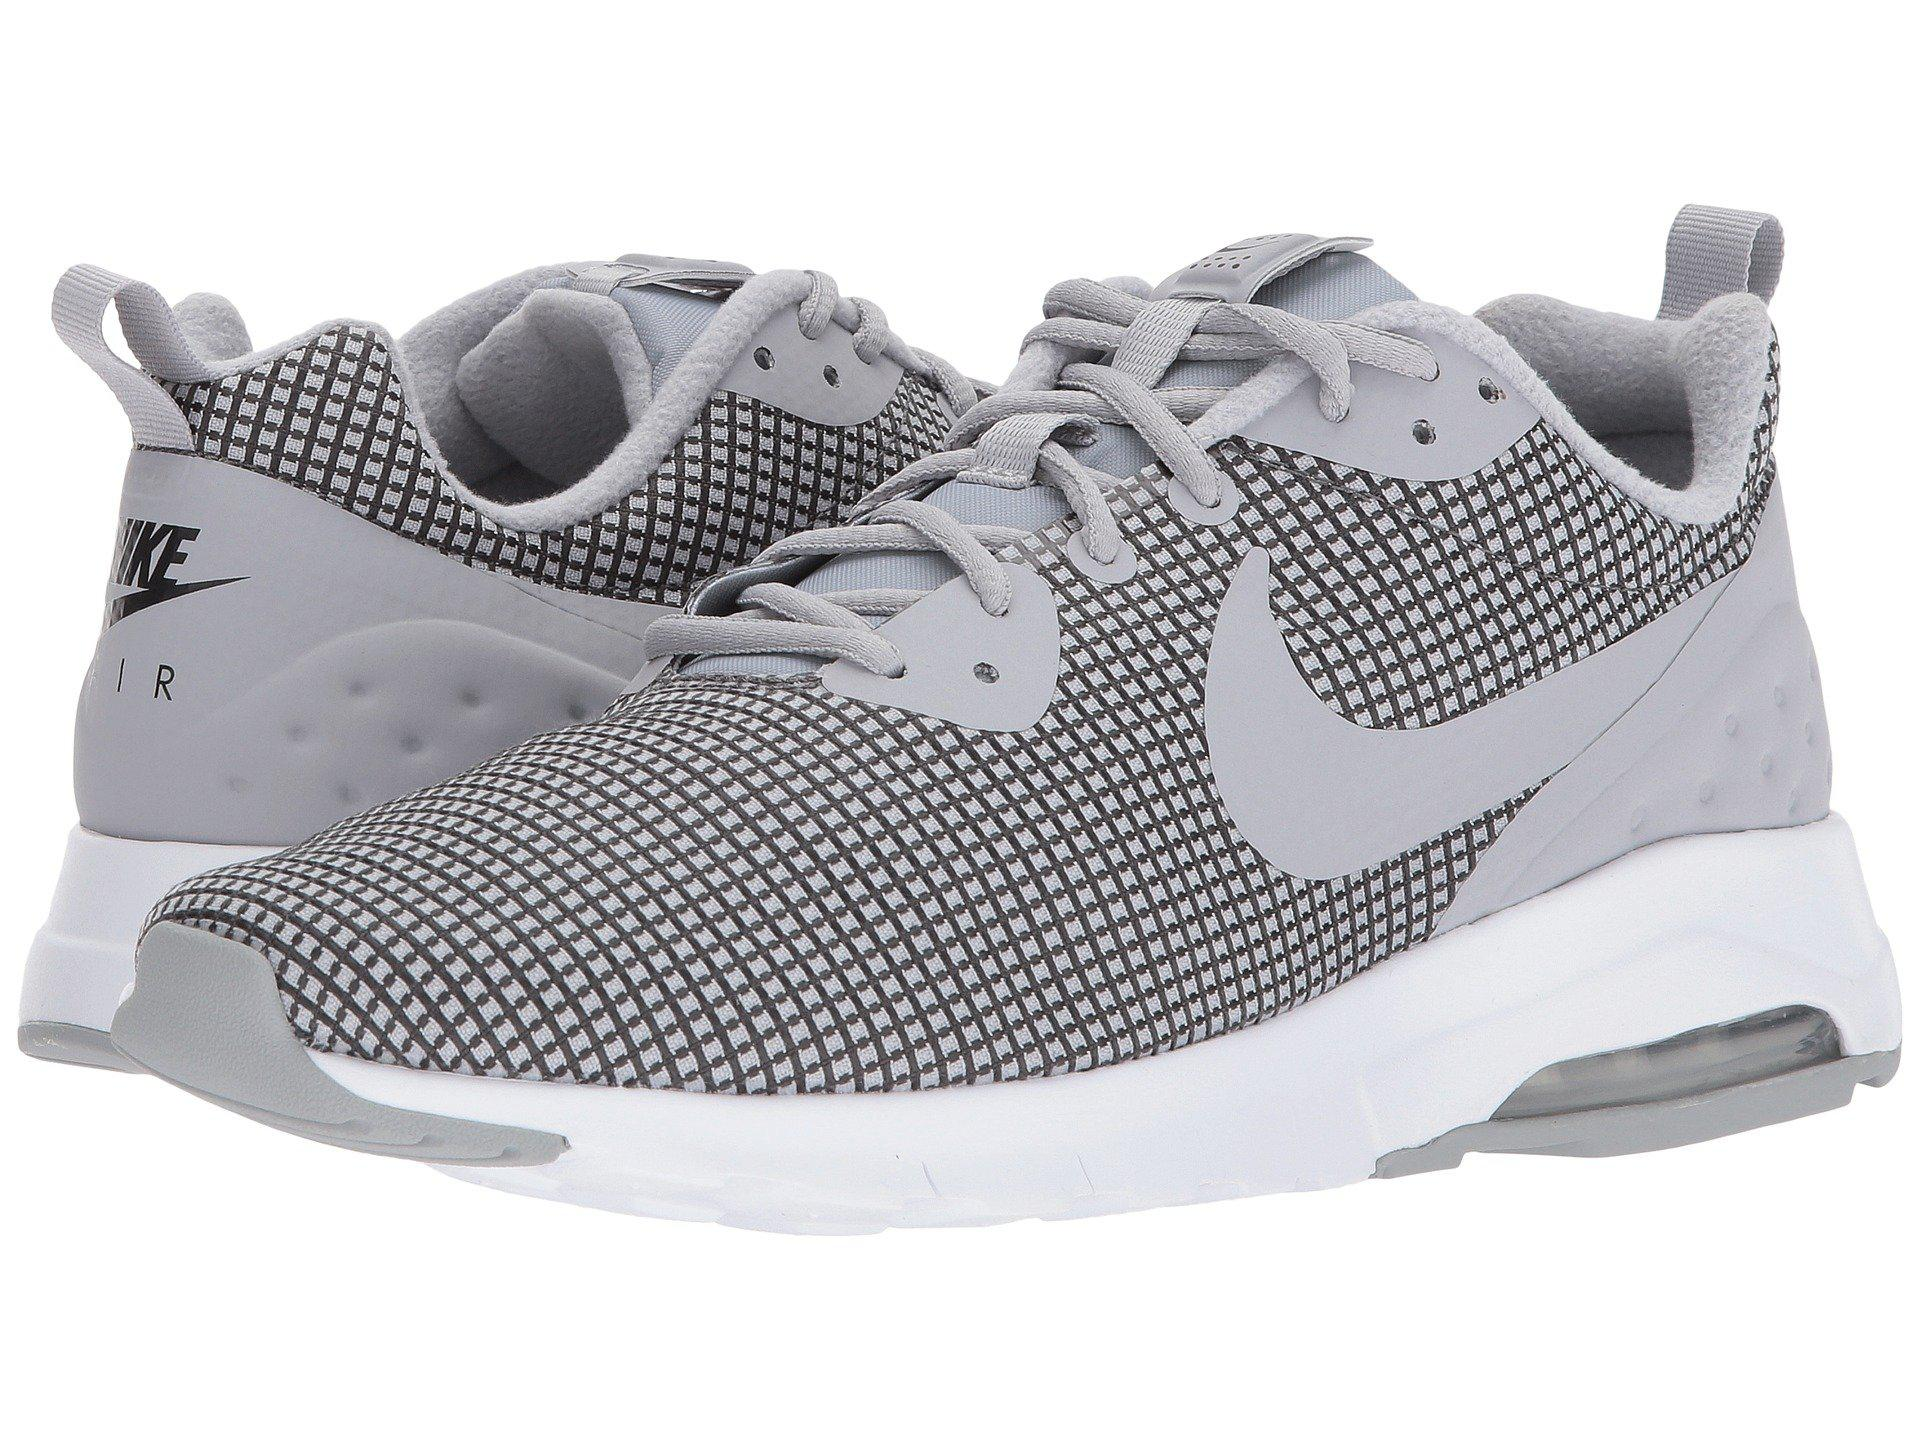 0daf8e5a394e Gallery. Previously sold at  6PM · Women s Nike Air Max ...